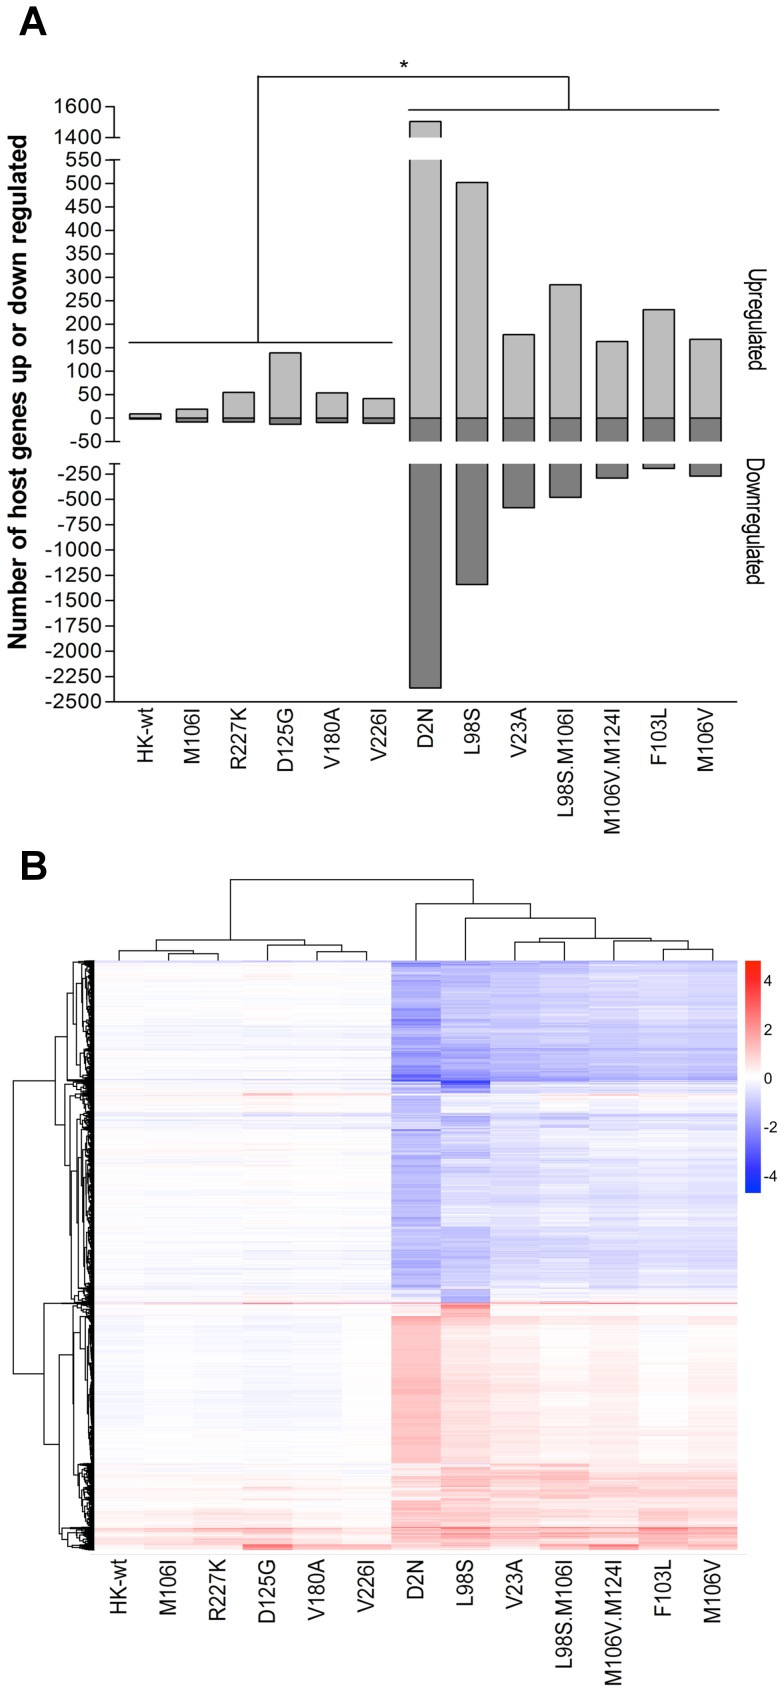 """Mouse-adaptive NS1 mutations regulate mouse gene expression by two different mechanisms. Mouse M1 cells were infected in triplicate at an MOI of 2 with rHK NS mutants or HK-wt virus, and total RNA isolated at 8 hpi was analyzed by microarray using <t>GeneChip</t> Mouse Exon 1.0 ST Array (Affymetrix, Santa Clara, CA, USA). Microarray gene expression data were normalized and analyzed by Flexarray 1.6.1. Genes were considered as up or down regulated relative to mock infected cells if they were ≤1 or ≥1 log2 fold different (≤ or ≥2 fold differences) expression level (p≤0.05; ANOVA). (A) The number of differentially regulated host genes that were significantly up or down regulated ≤2 or ≥2 fold at the p≤0.05 by ANOVA is plotted for each mutant. The mutants formed two groups with either """"low gene regulation"""" (LGR) or """"high t gene regulation"""" (HGR) phenotypes. (B) Heat map of differentially regulated genes in mouse cells infected with HK-wt or rHK NS1 mutant viruses relative to mock infected M1 cells. Genes (total = 5274) were included for hierarchical clustering analysis among mutants if they were differentially regulated (≤2 −1 or ≥2 1 fold differences) and significantly different from mock infected cells for one or more of the mutants, and gene regulation signatures were also analyzed for hierarchical clustering among viruses. The scale depicts up (red) and down (blue) regulated genes according to the log2 scale shown; equal expression is indicated in white (log 2 0 = 1)."""